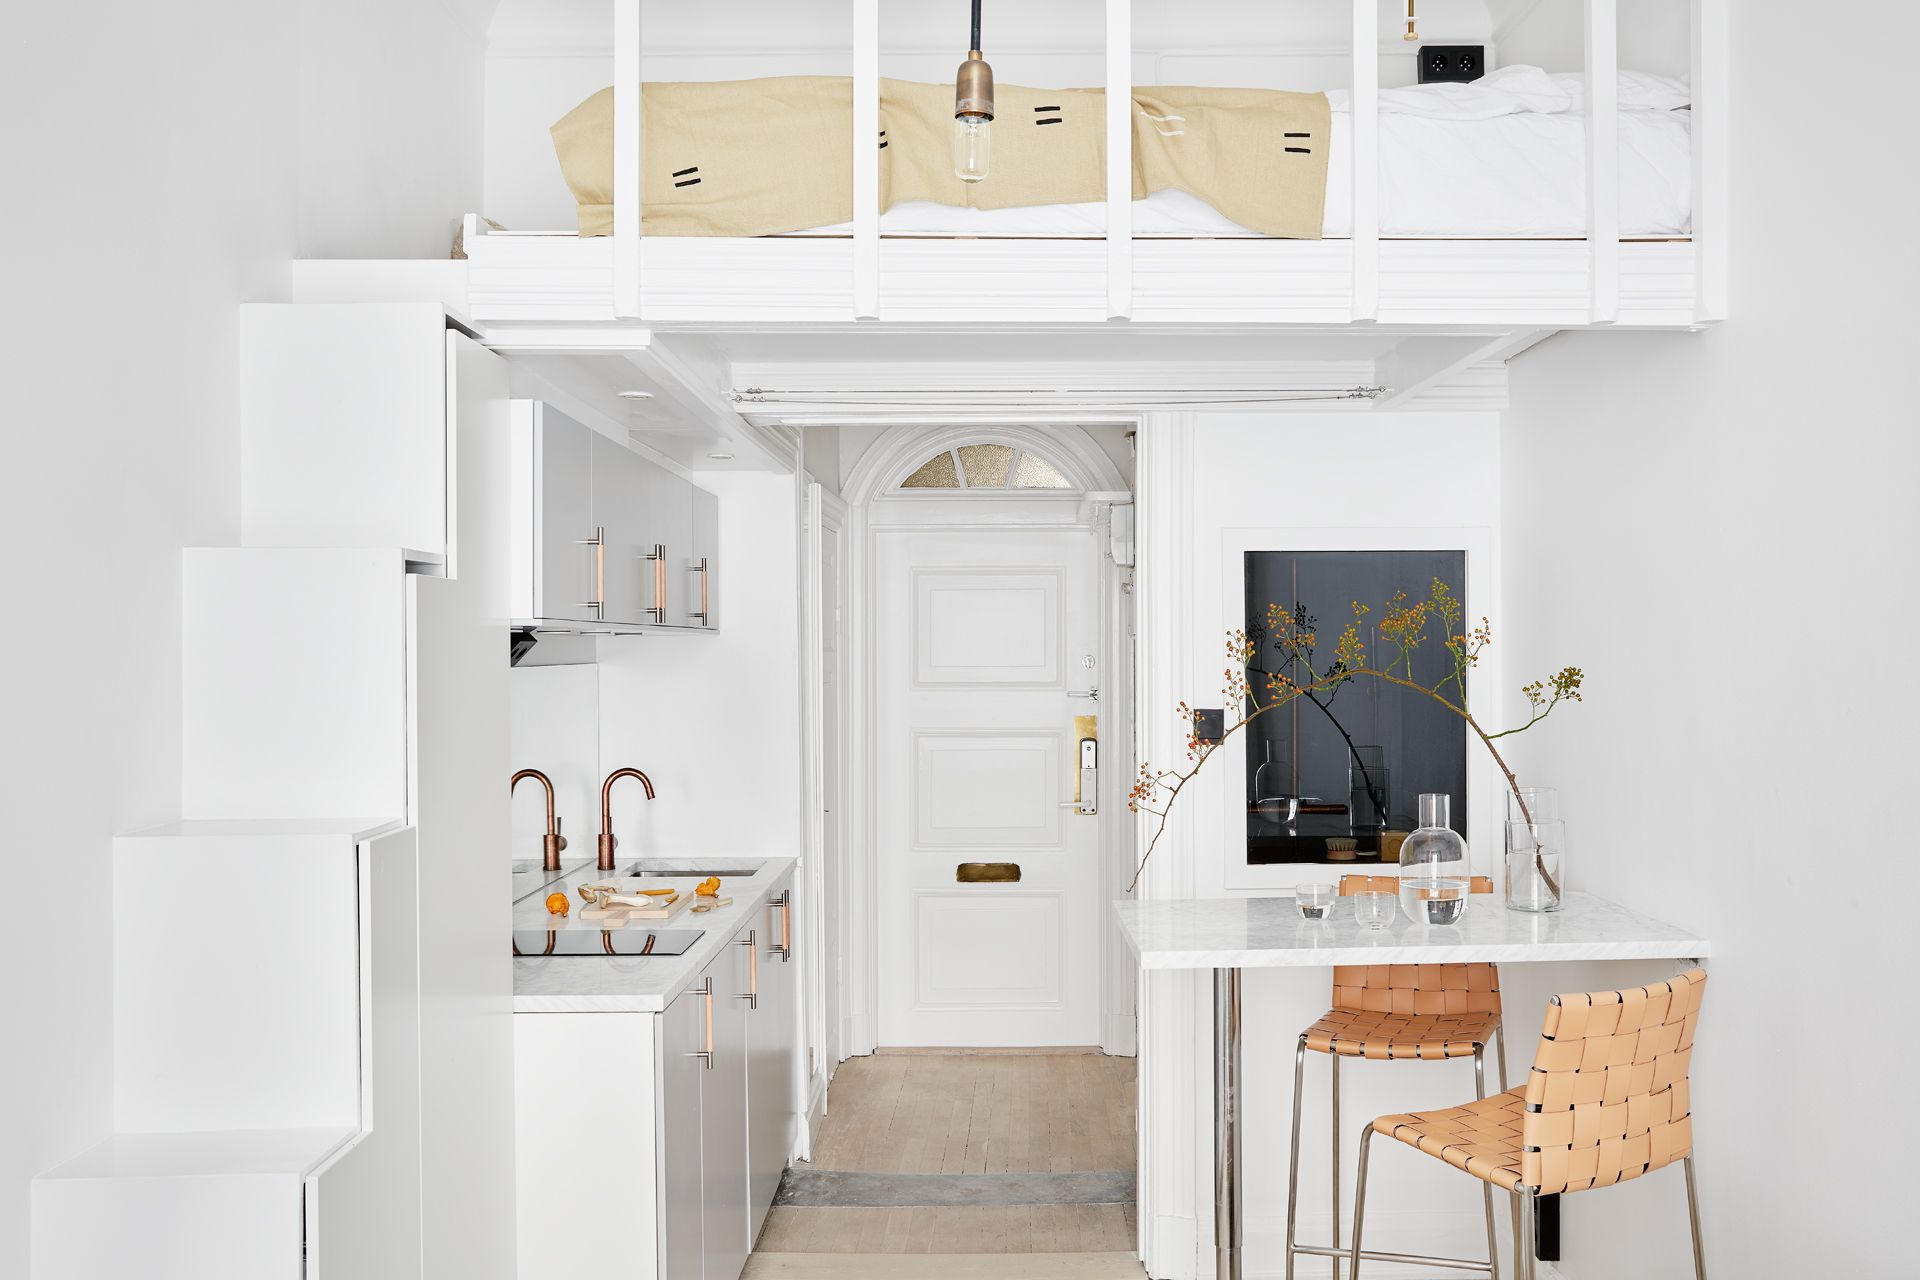 Mini Apartamentos on Loft Kitchen Design Ideas